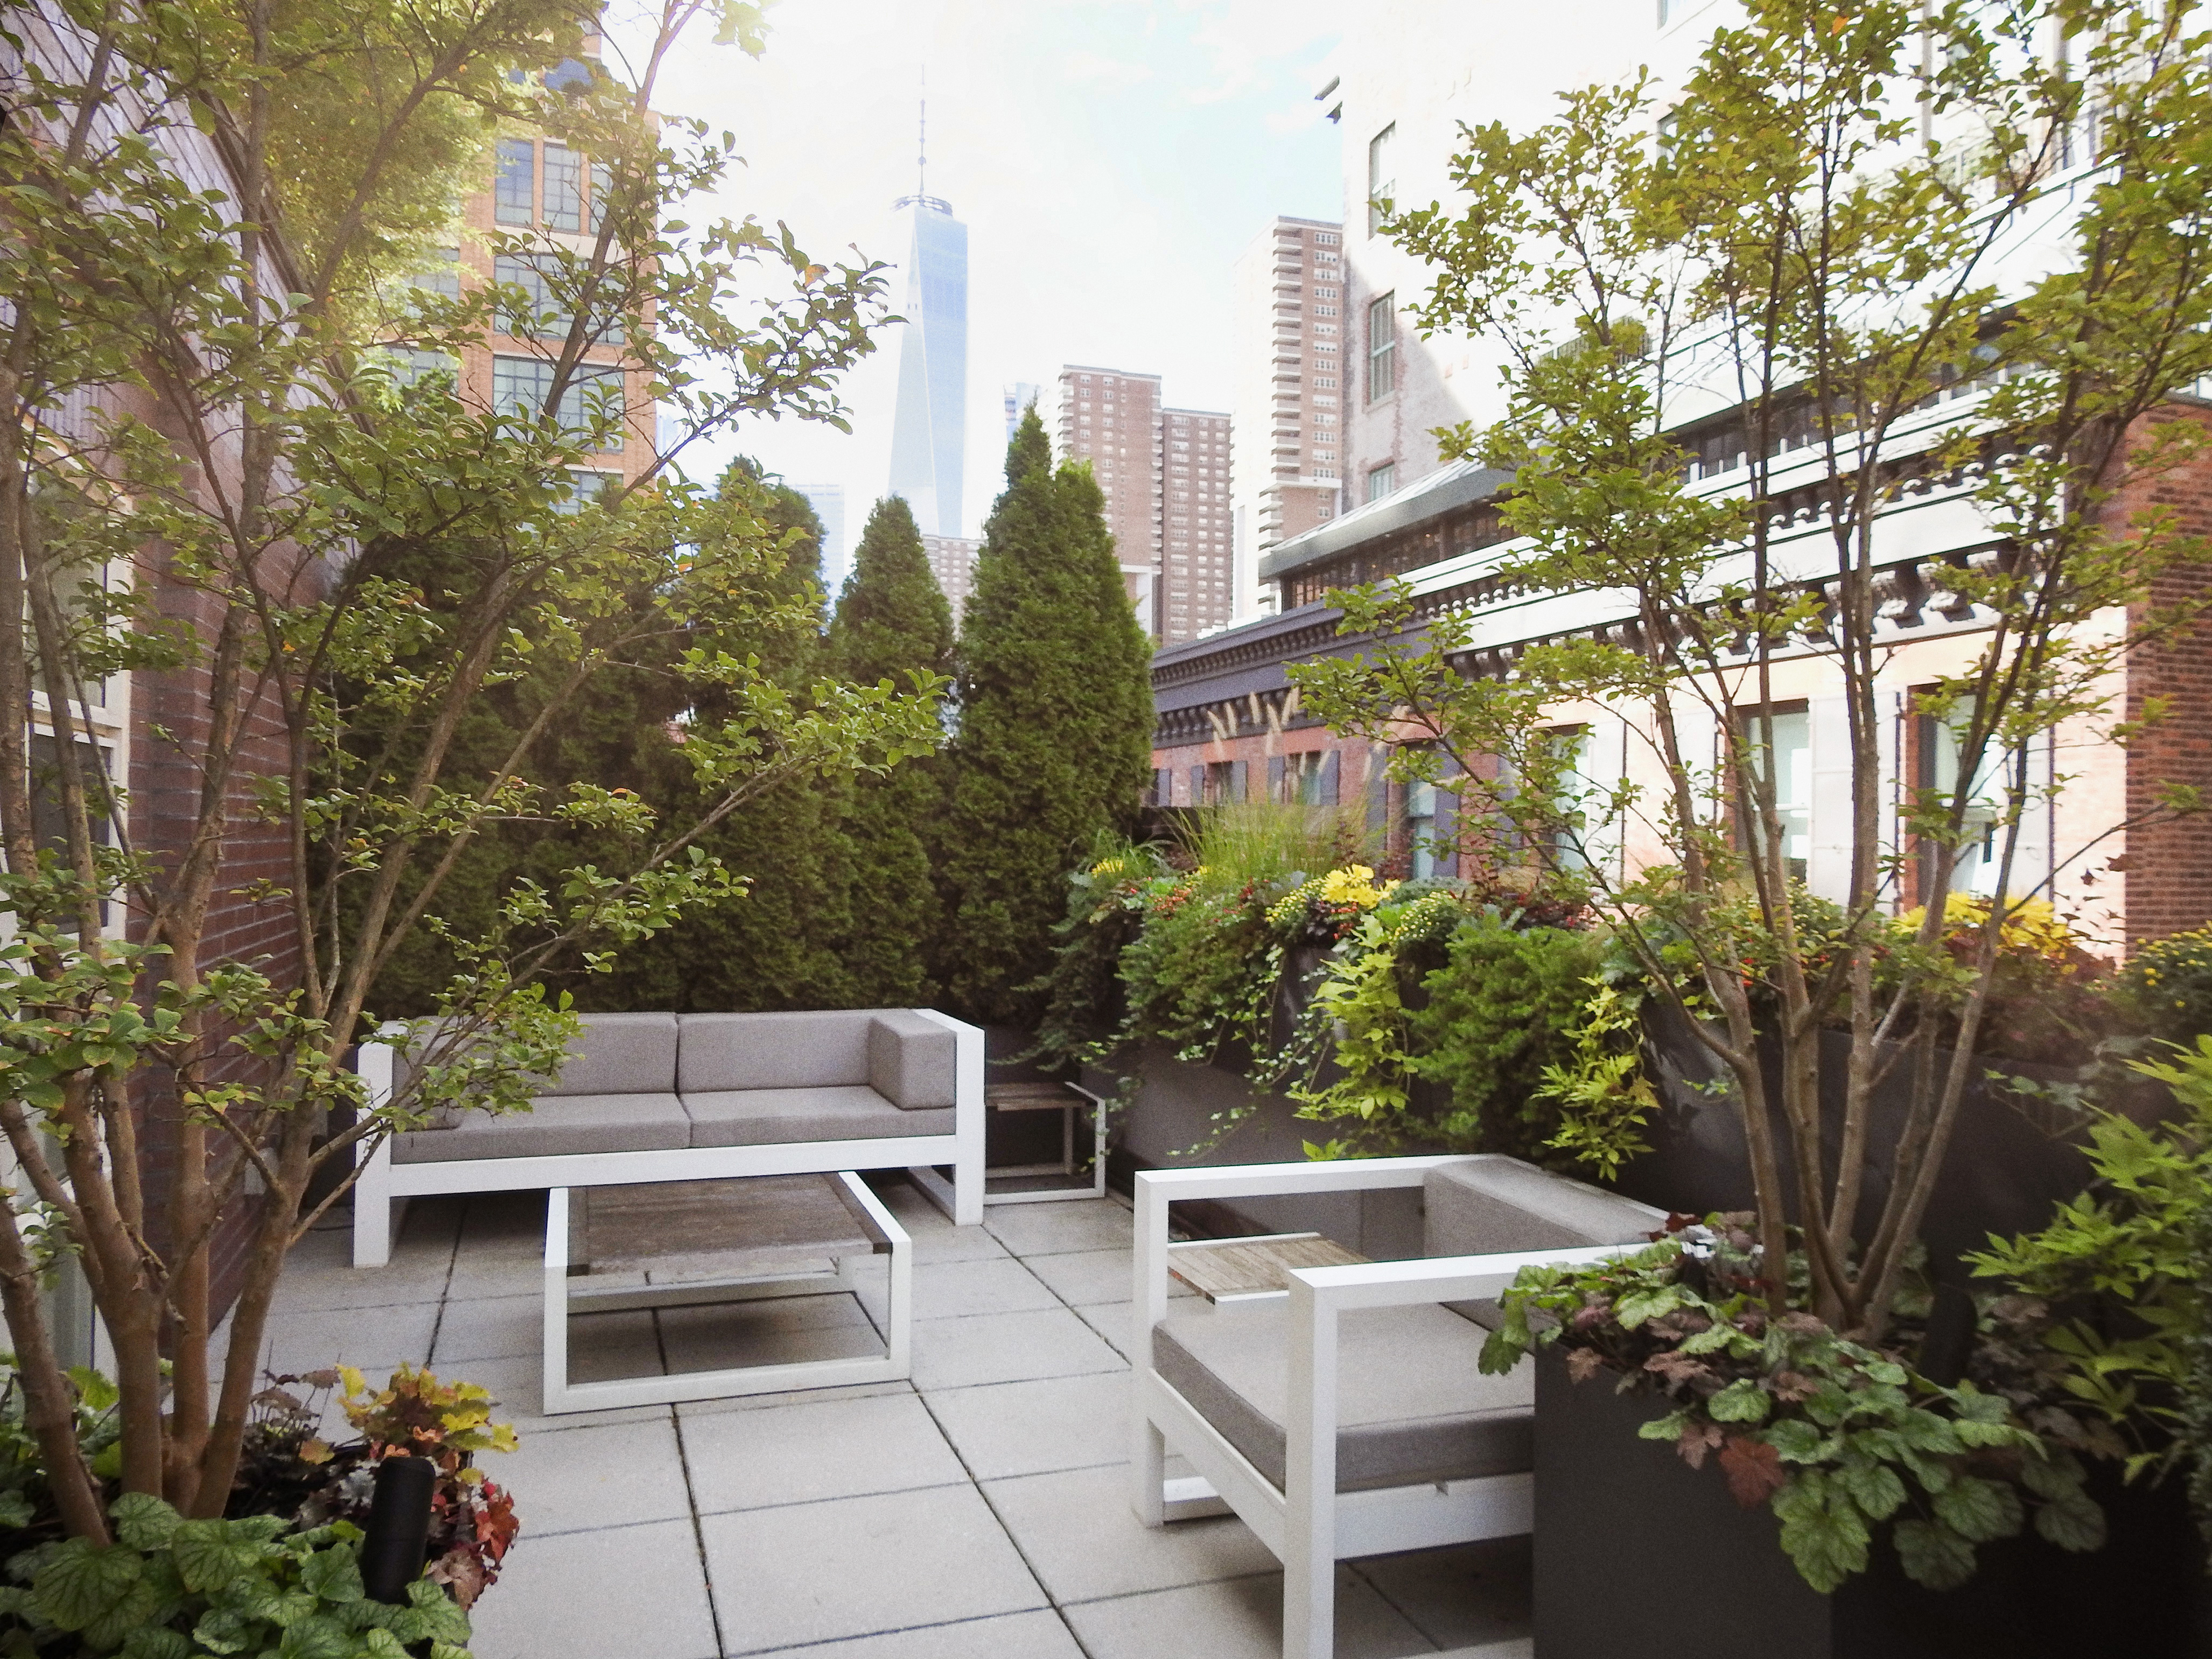 New York City rooftop with trees and seating area